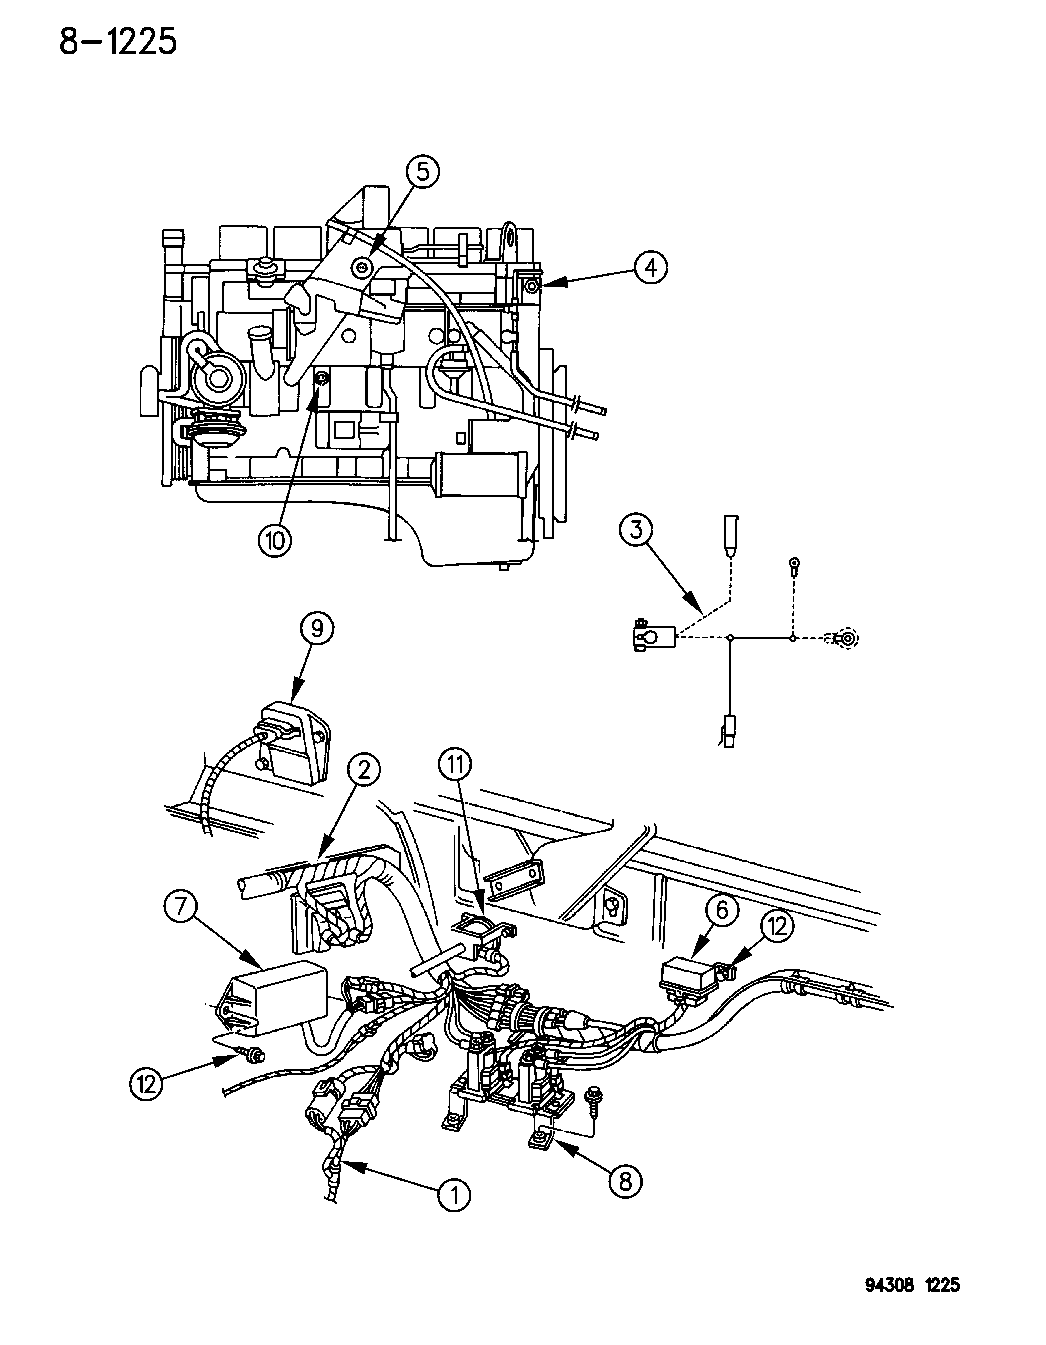 1995 Dodge Ram 2500 Wiring - Engine